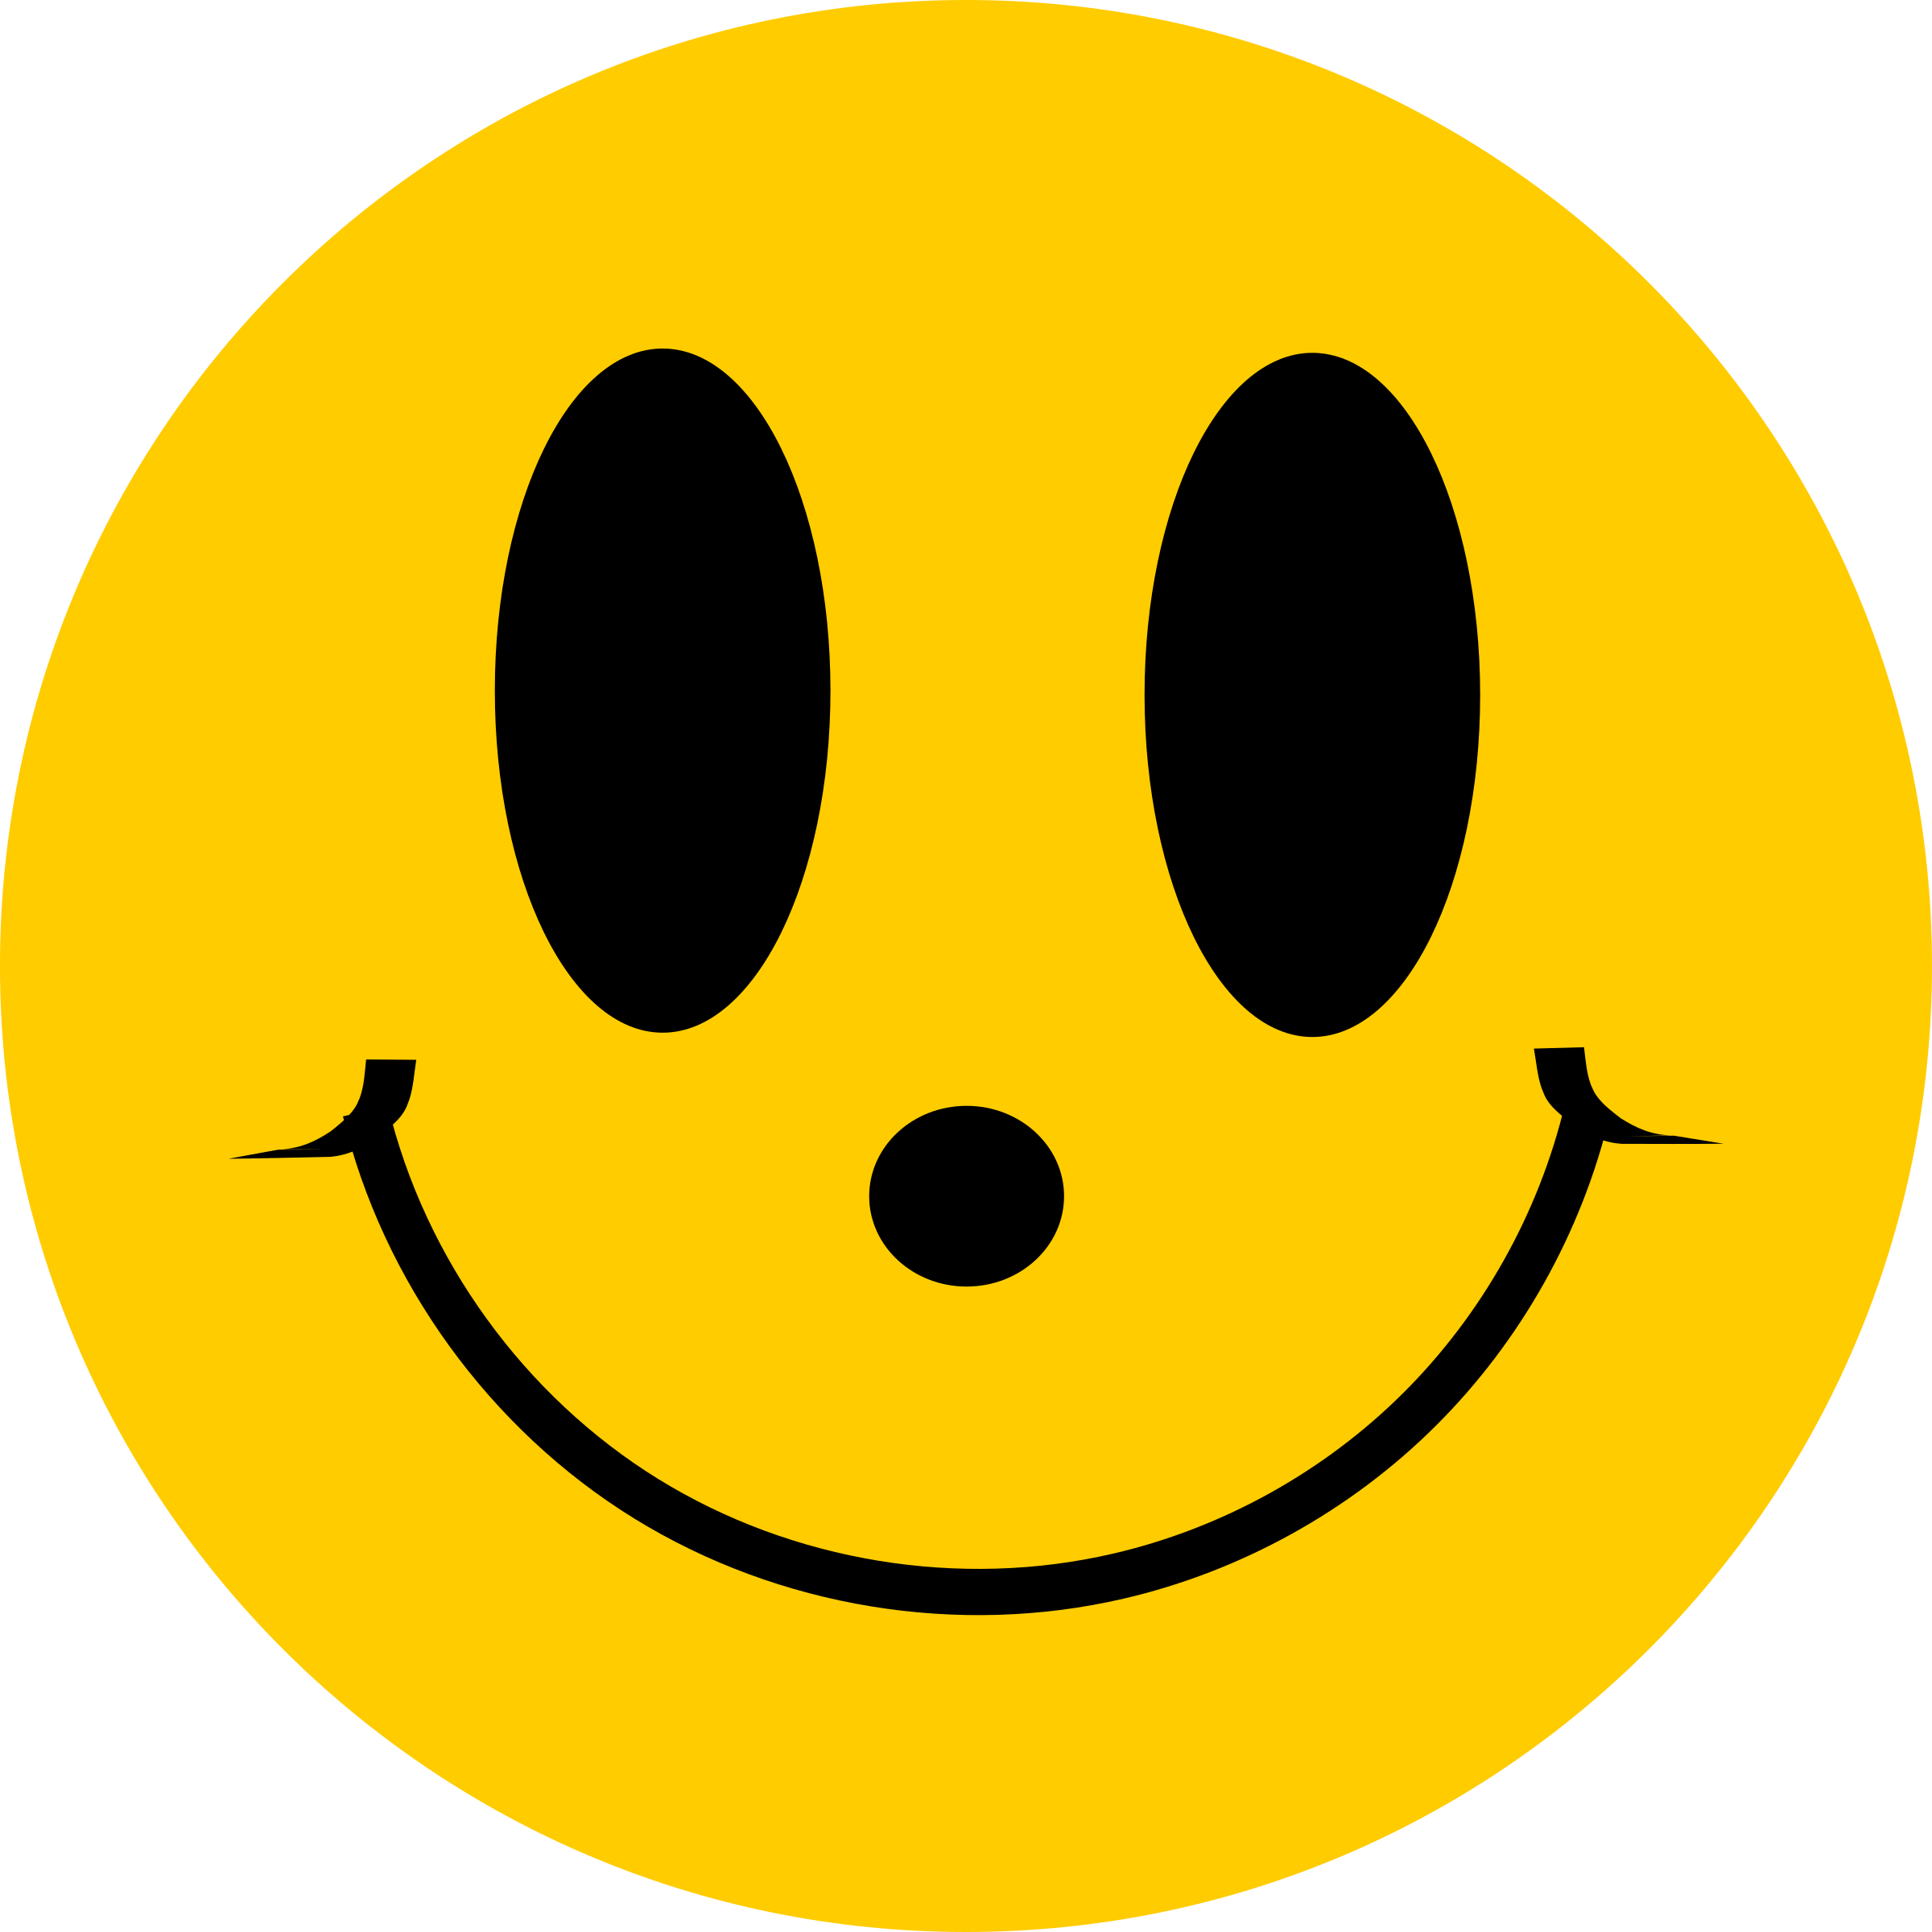 Simple Flat Smiley Face Smile by NewAeonDesign